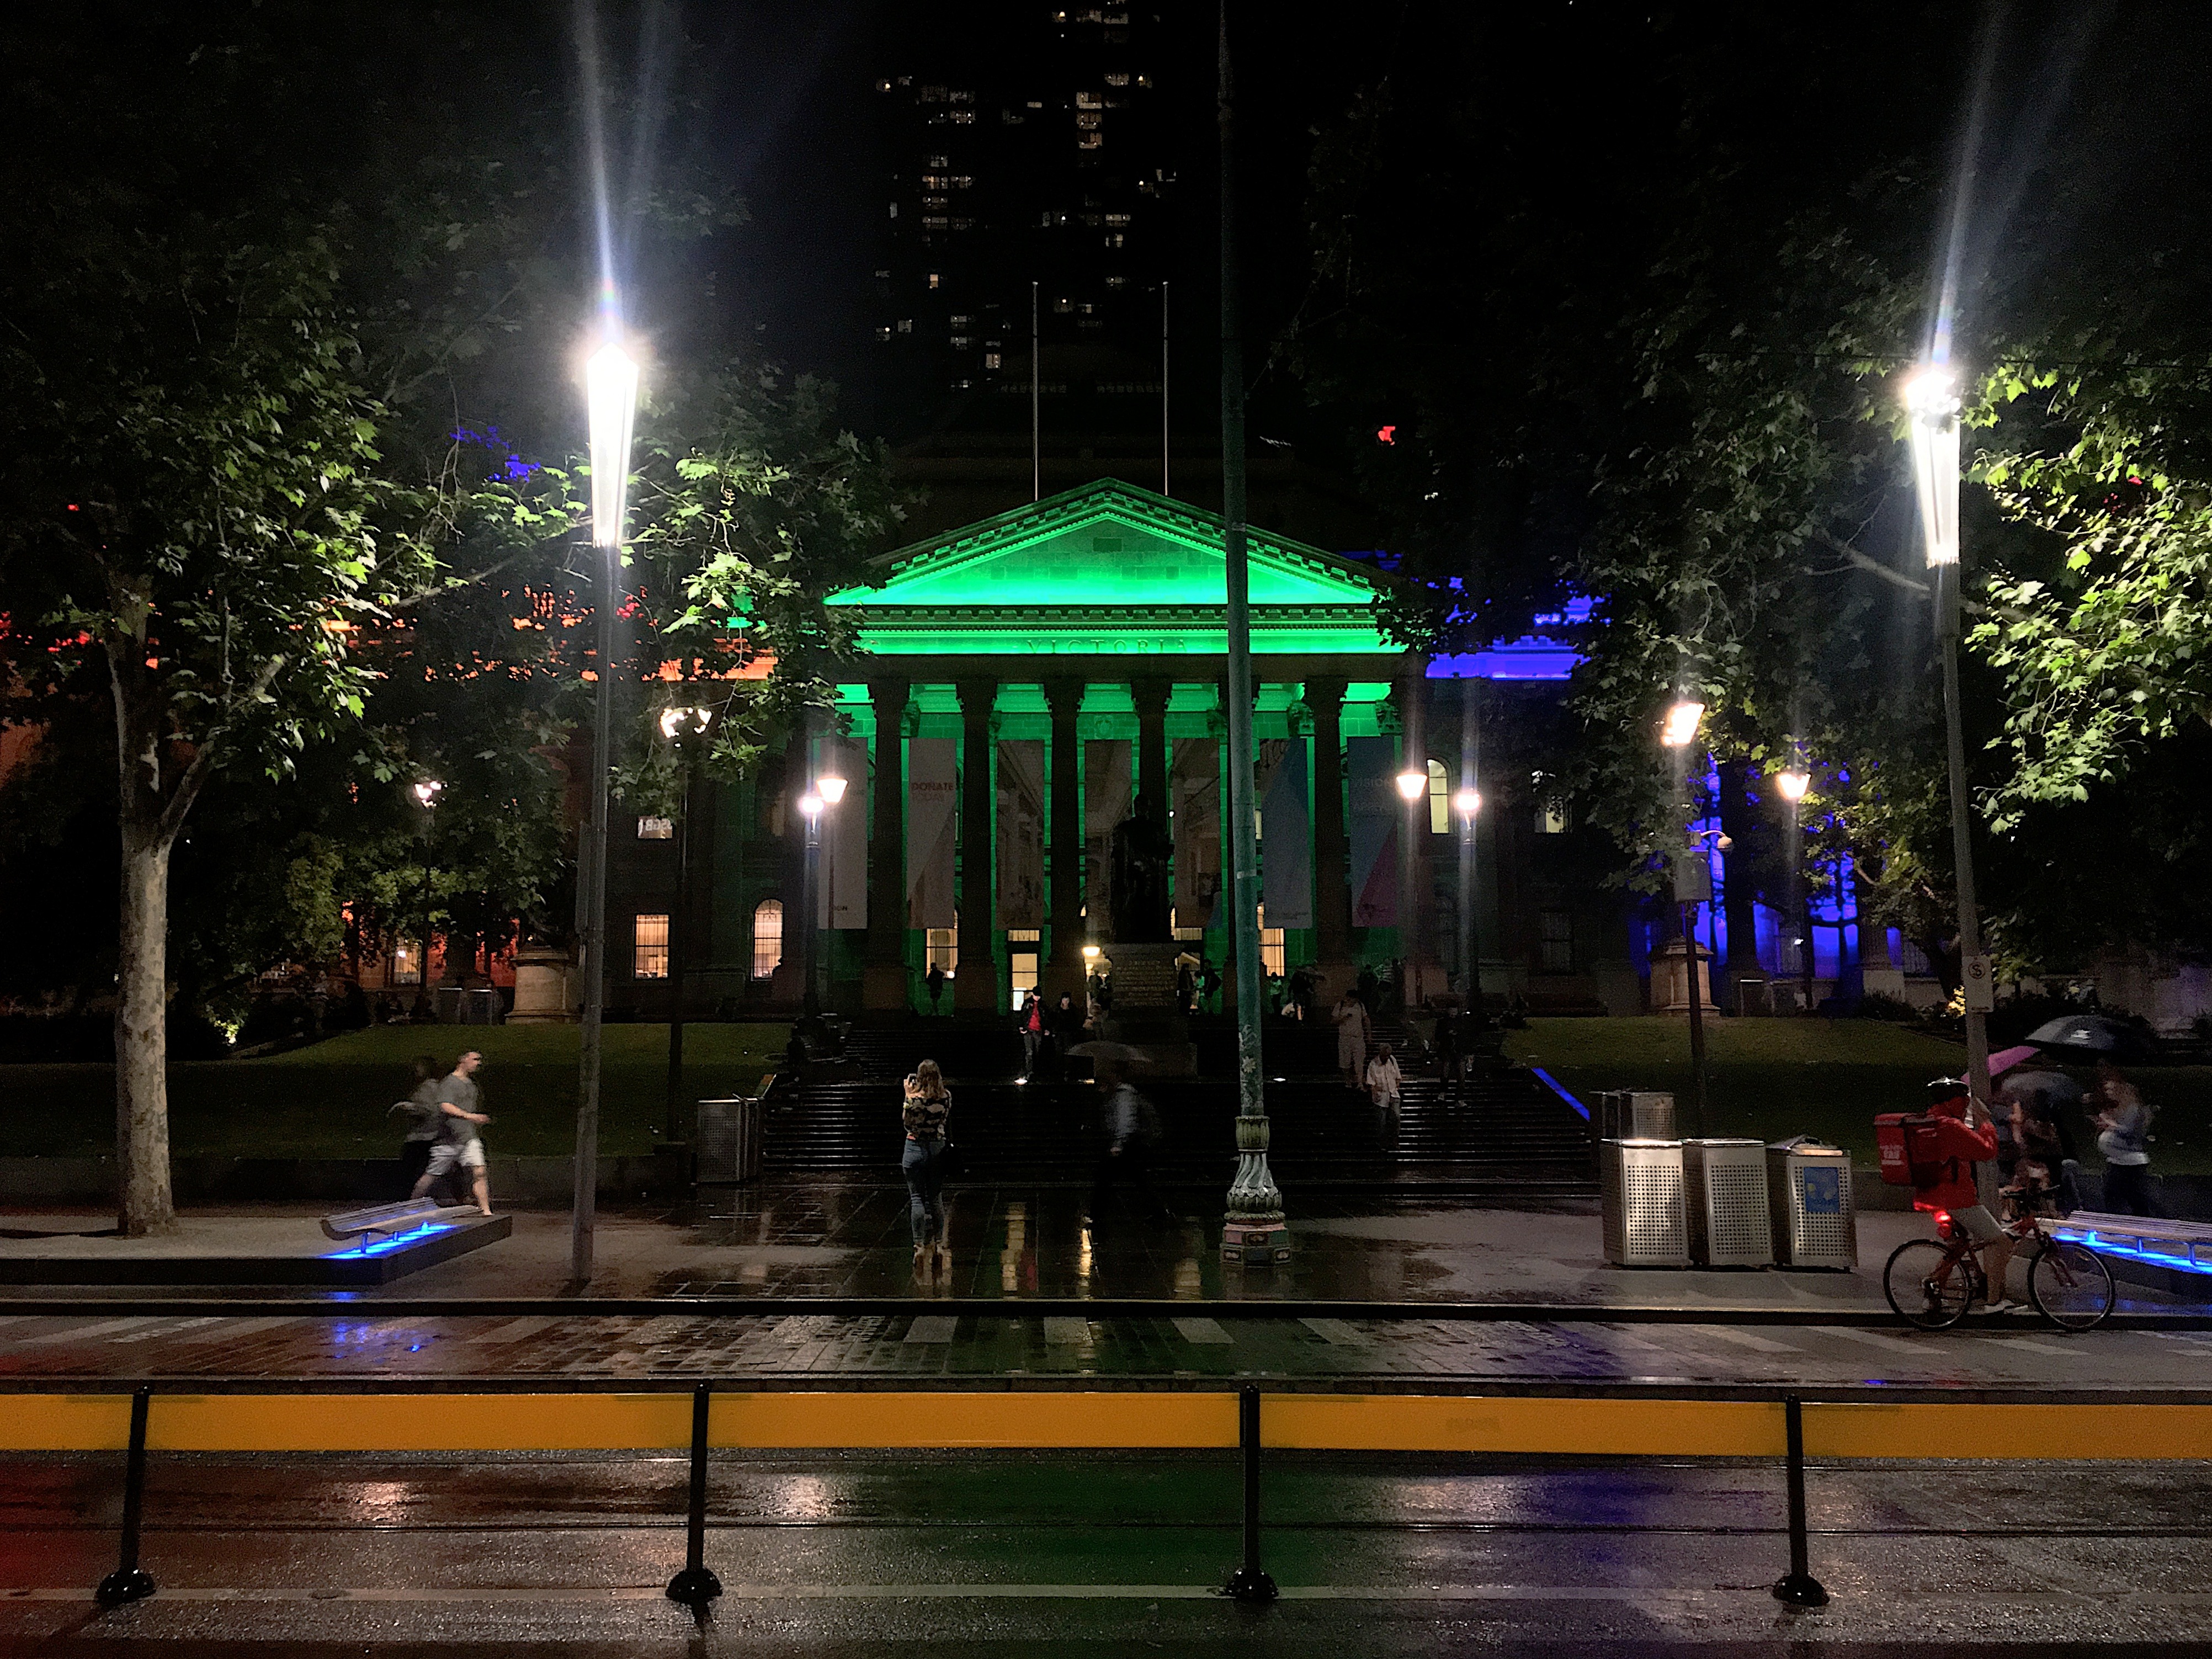 Melbourne in YES Celebation, Night, Park, People, Road, HQ Photo